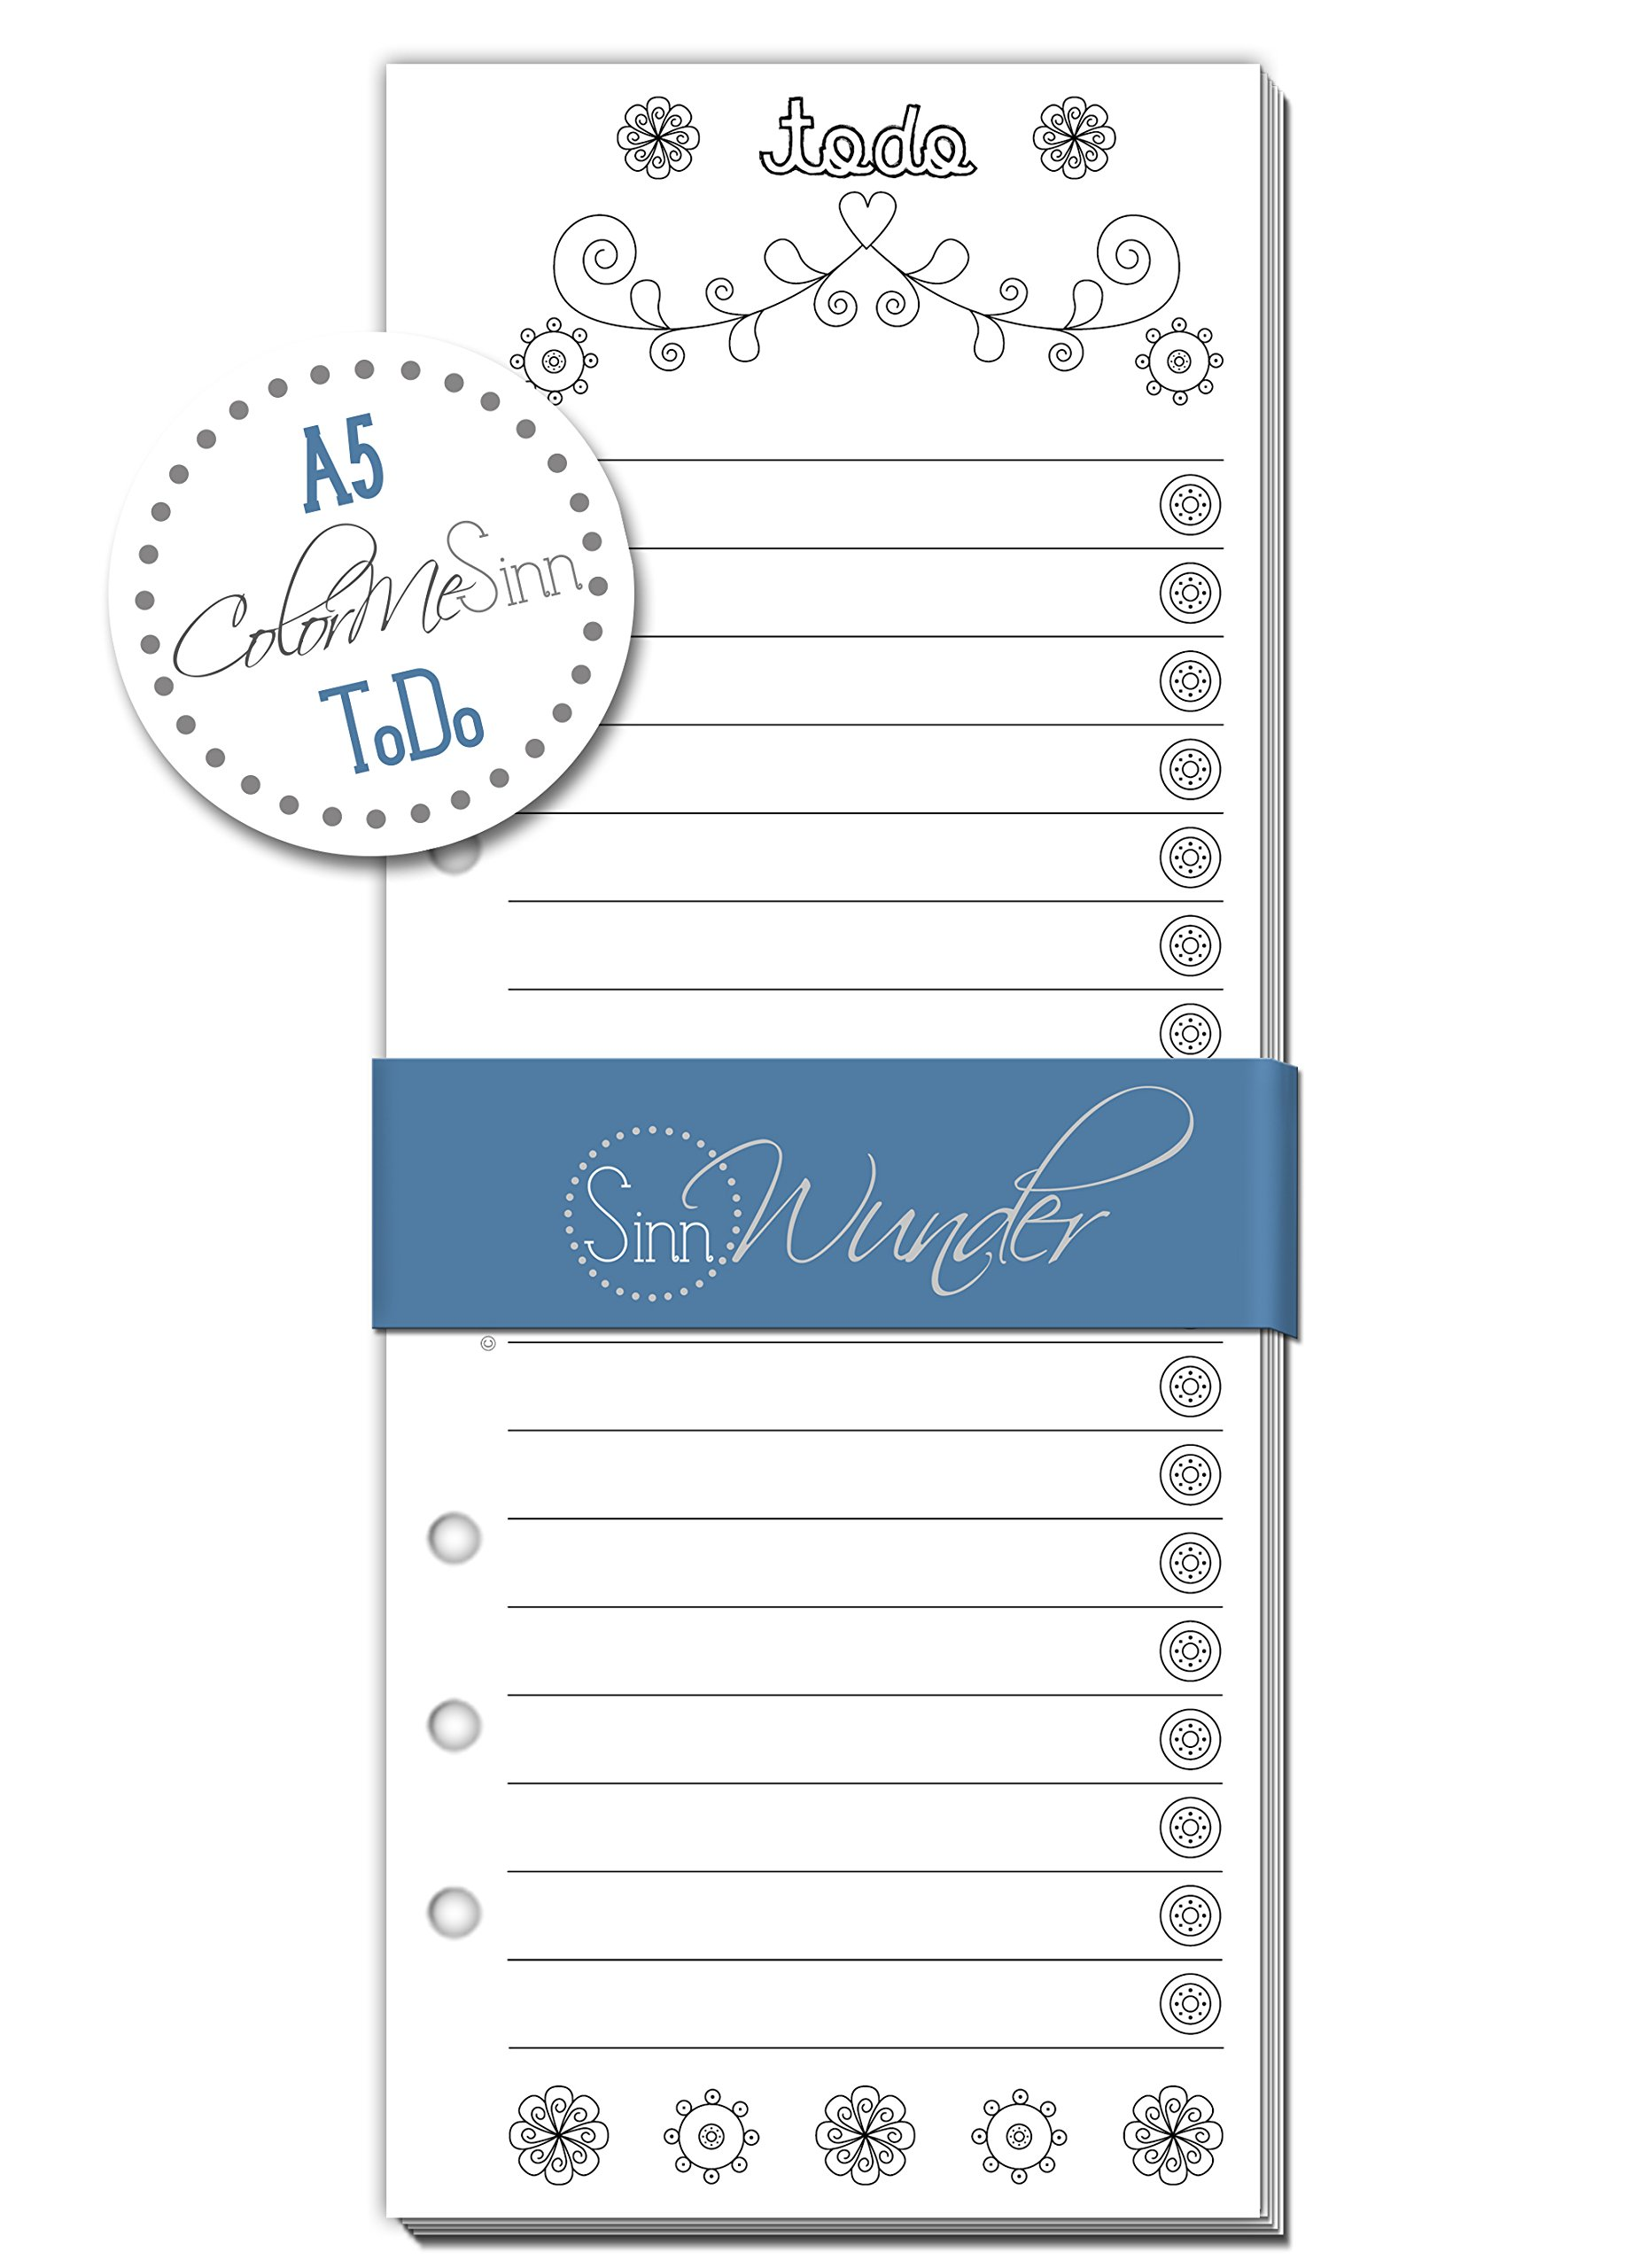 SinnWunder ToDo-Lists, Calendar Refills/Inserts for Ring Bound Planners, Size A5, Different Designs available (ColorMeSinn)